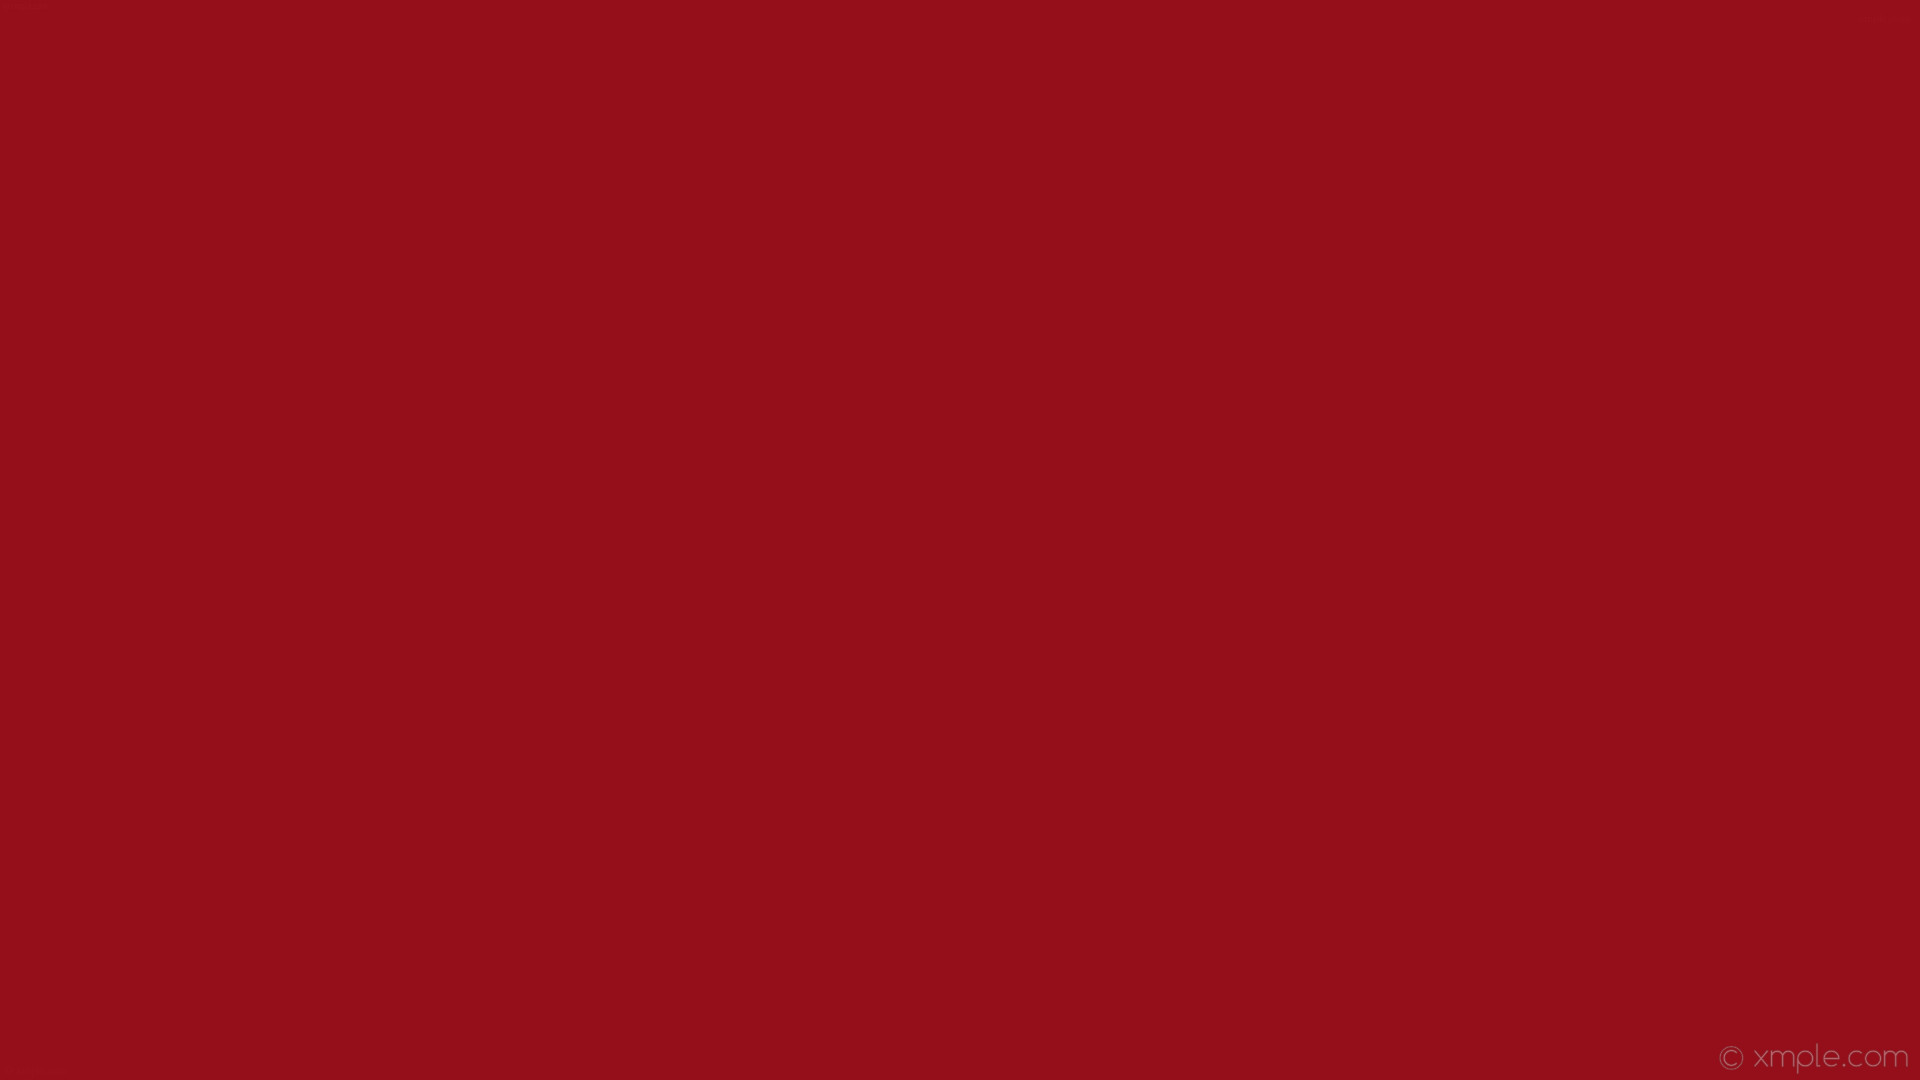 wallpaper single plain red solid color one colour #950f1a